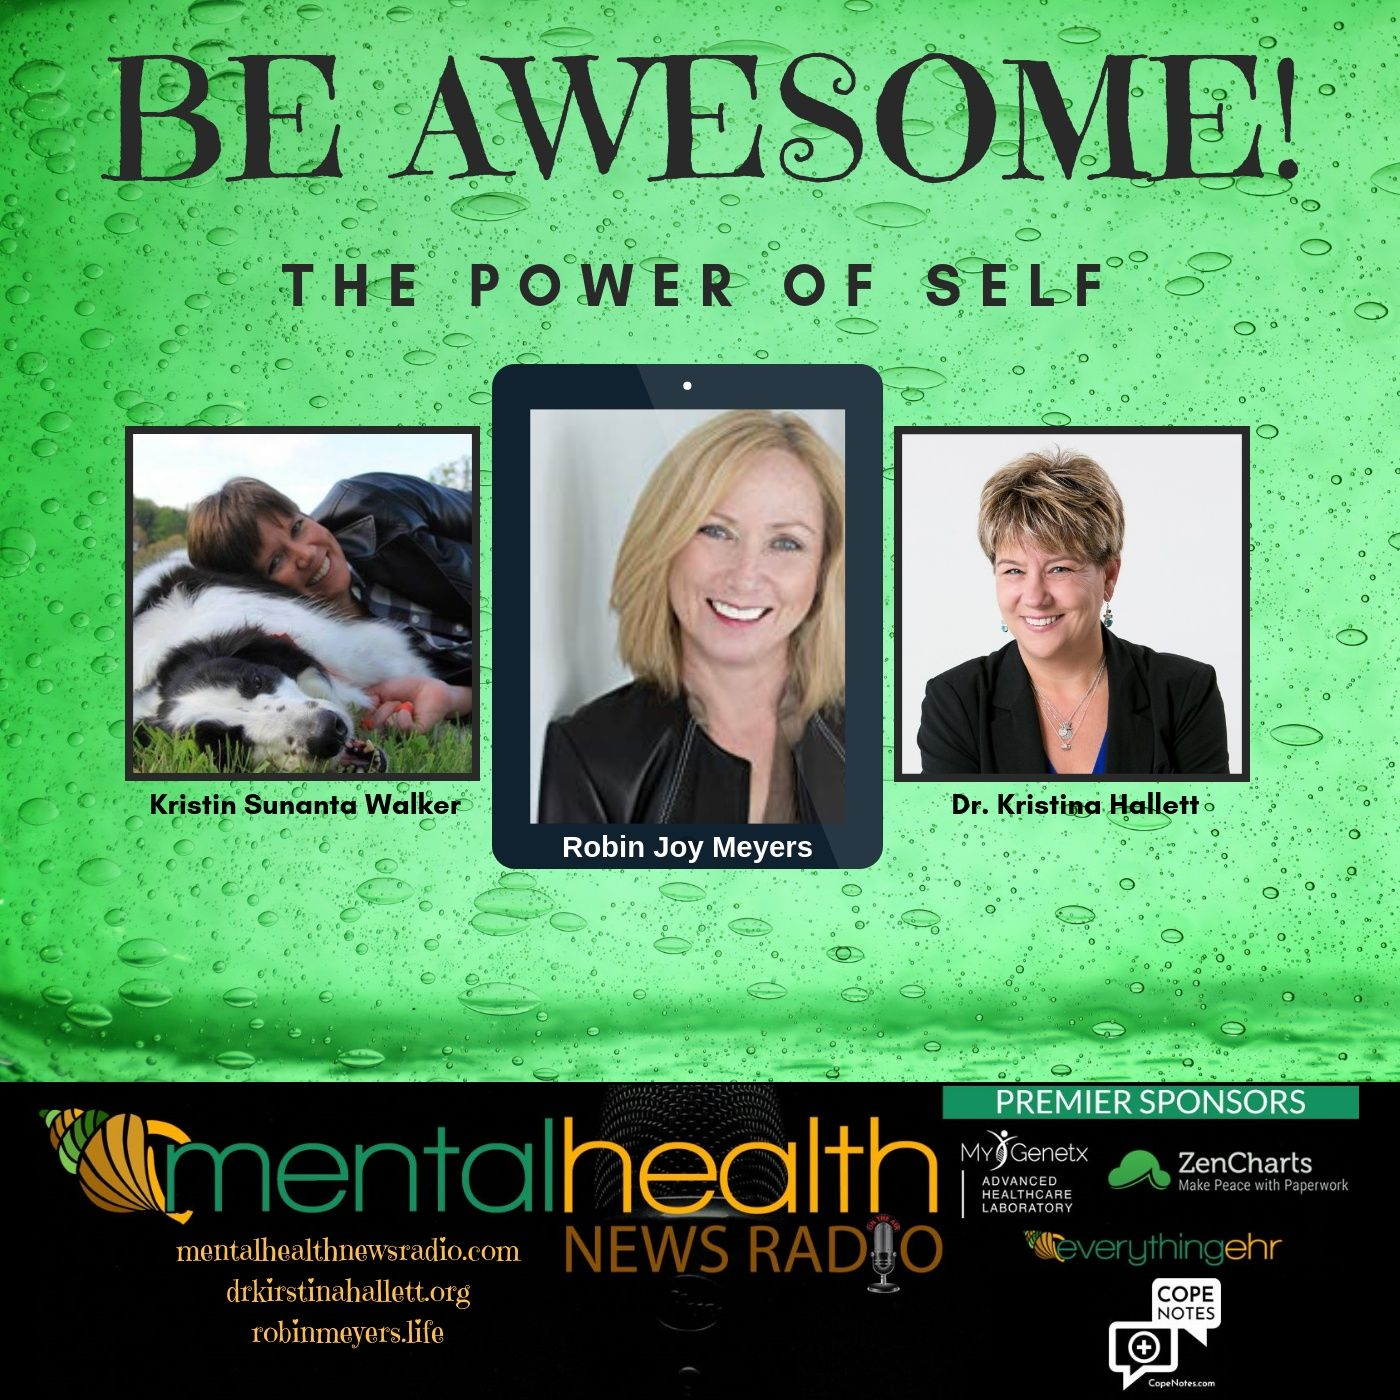 Mental Health News Radio - Be Awesome: The Power of Self with Robin Joy Meyers